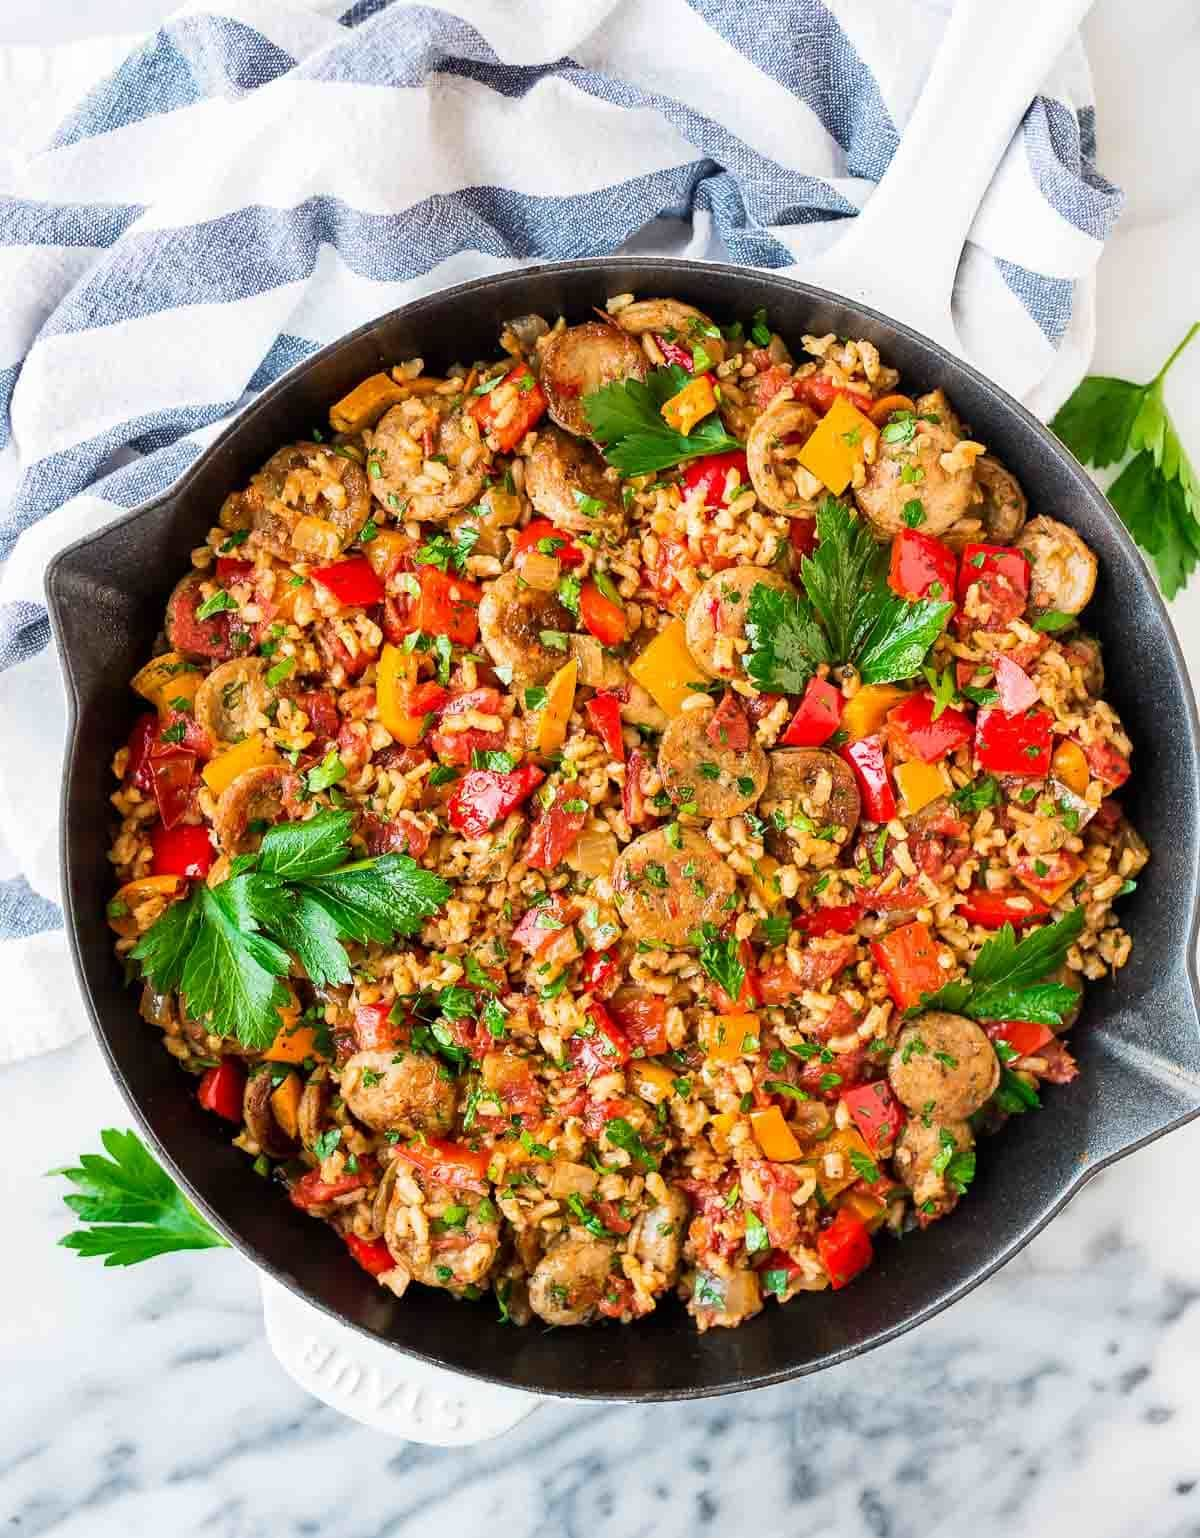 A skillet with the best one pan meal that's packed with veggies